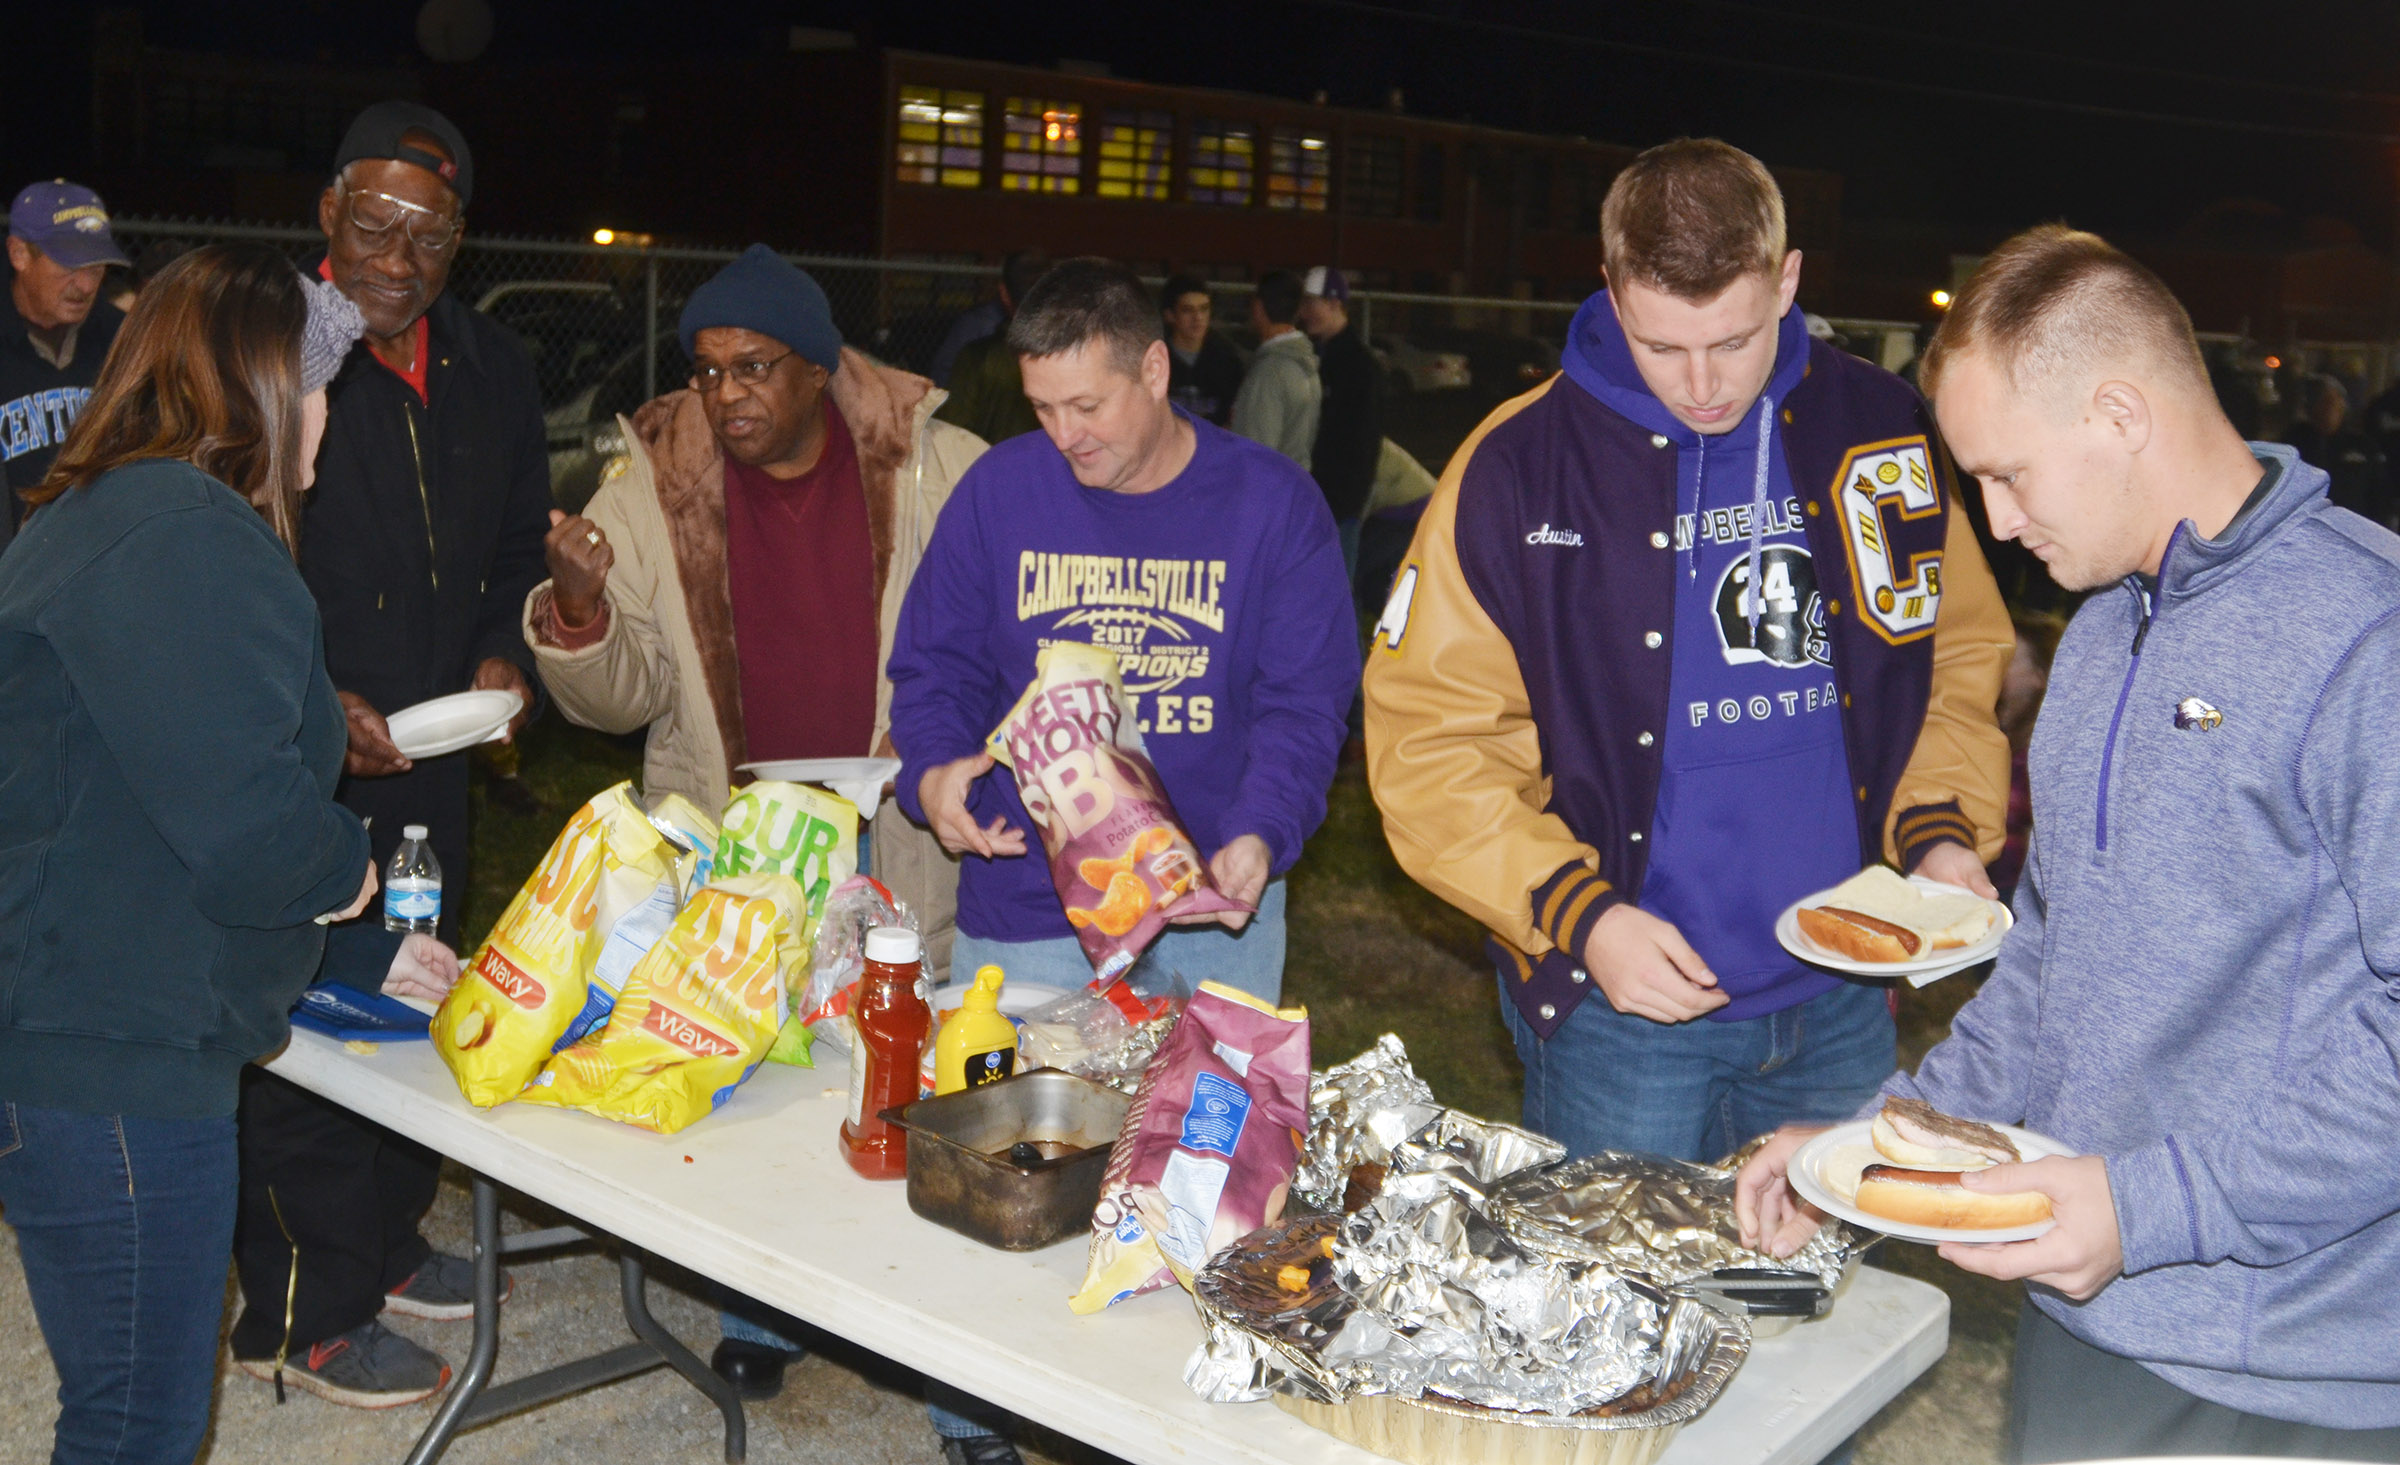 CHS hosted a tailgate before the game for students, staff members and fans. Several alumni also attended.